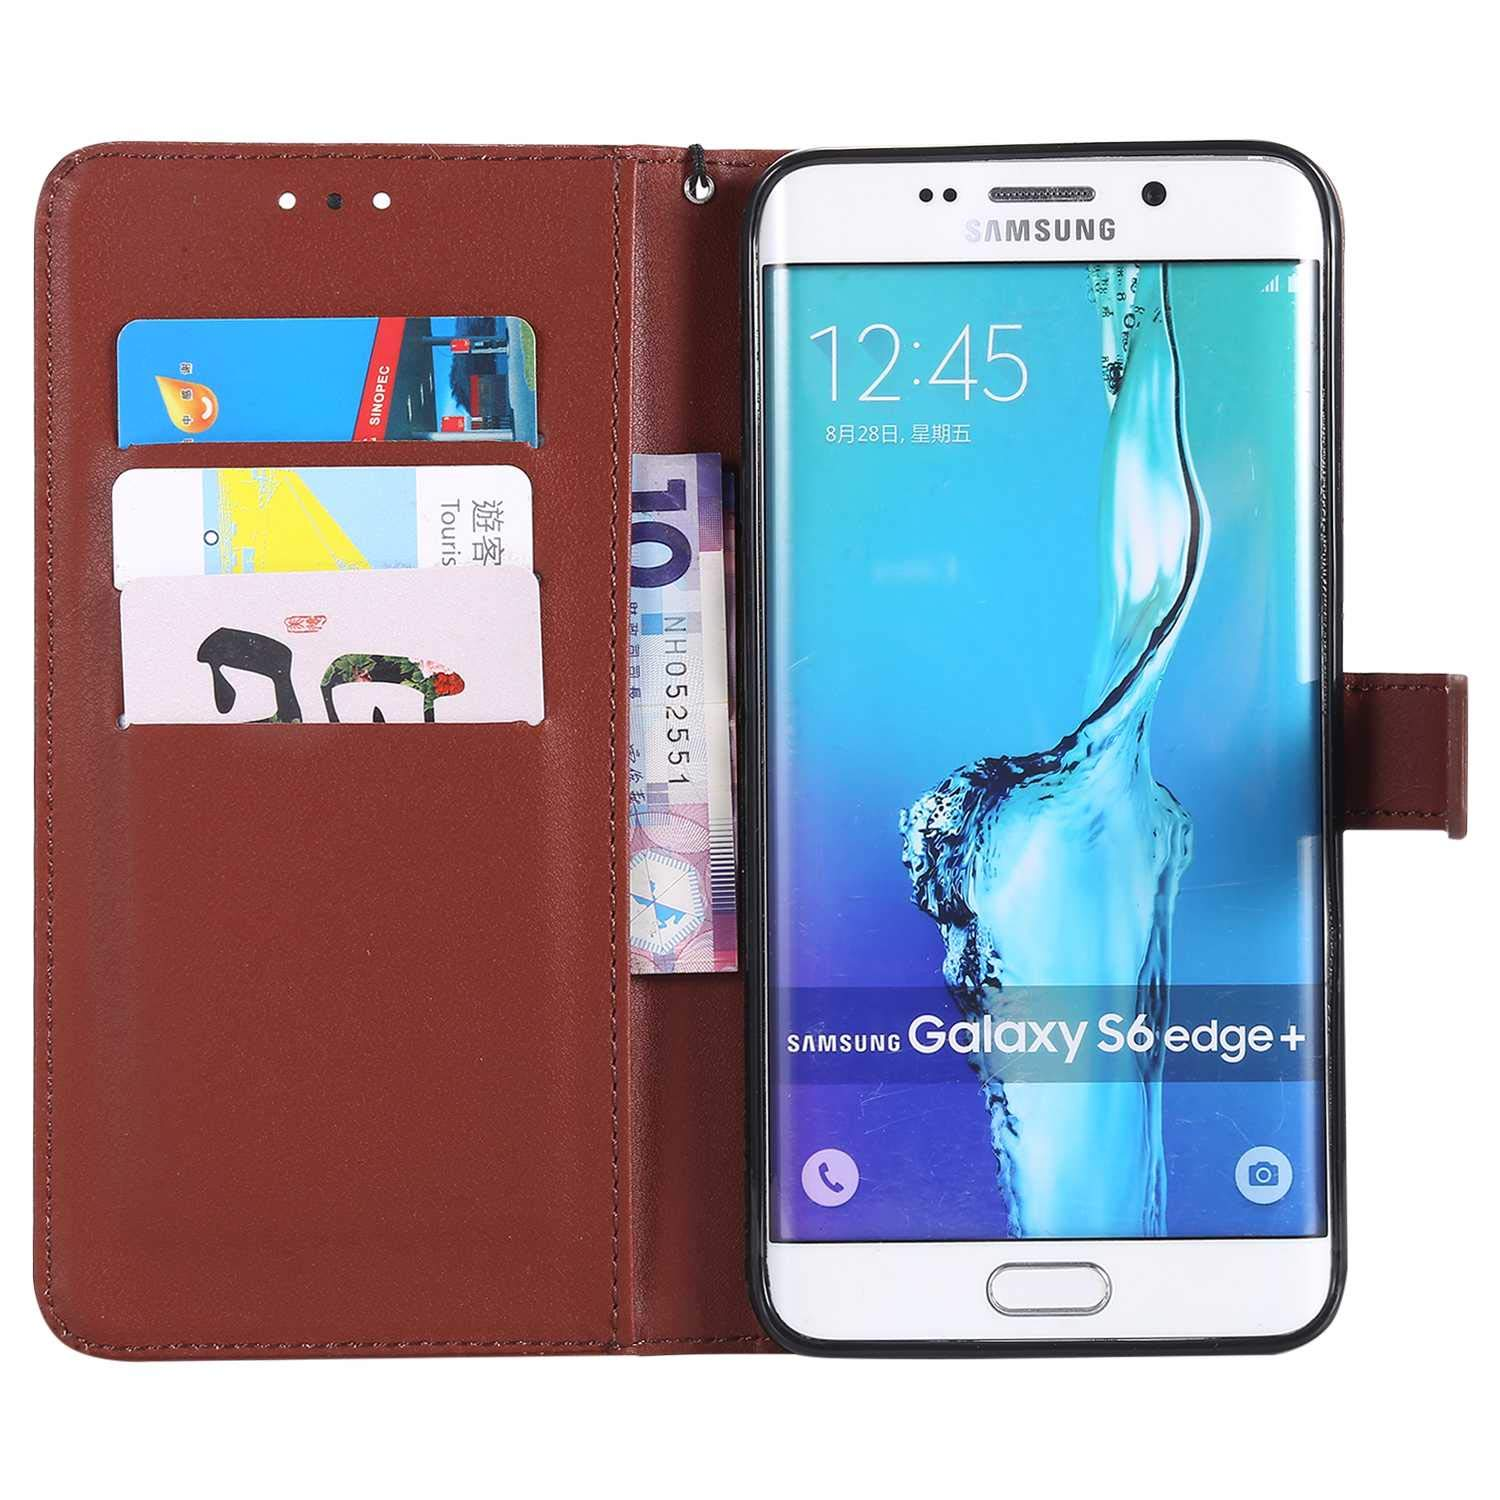 UNEXTATI Galaxy S6 Edge Plus Case, Leather Magnetic Closure Flip Wallet Case with Card Slot and Wrist Strap, Slim Full Body Protective Case (Brown #6) by UNEXTATI (Image #2)